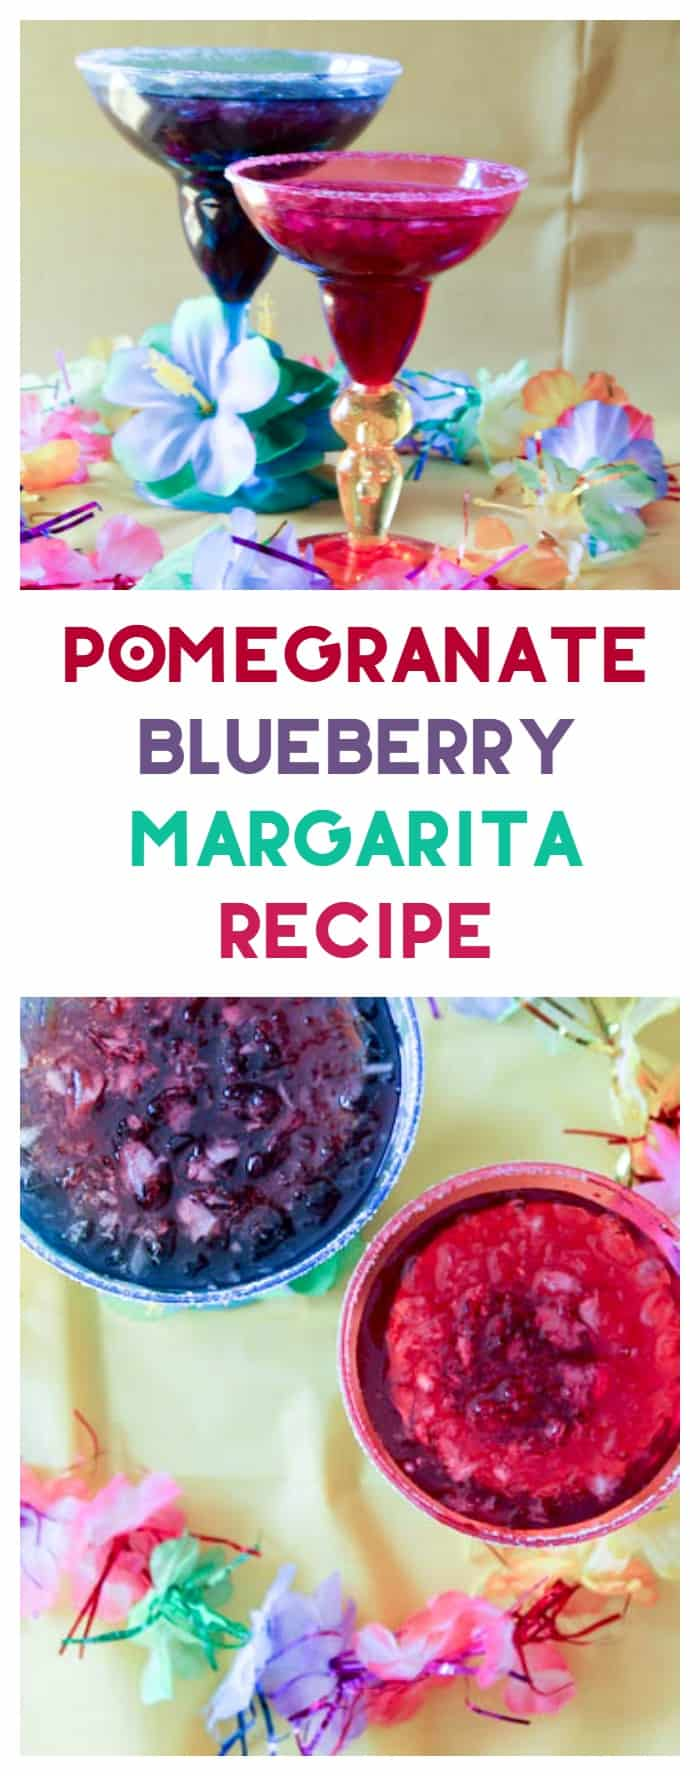 Love the combination of pomegranate and blueberry in this yummy margarita recipe. It's easy enough to make a non-alcoholic version if you want, too.